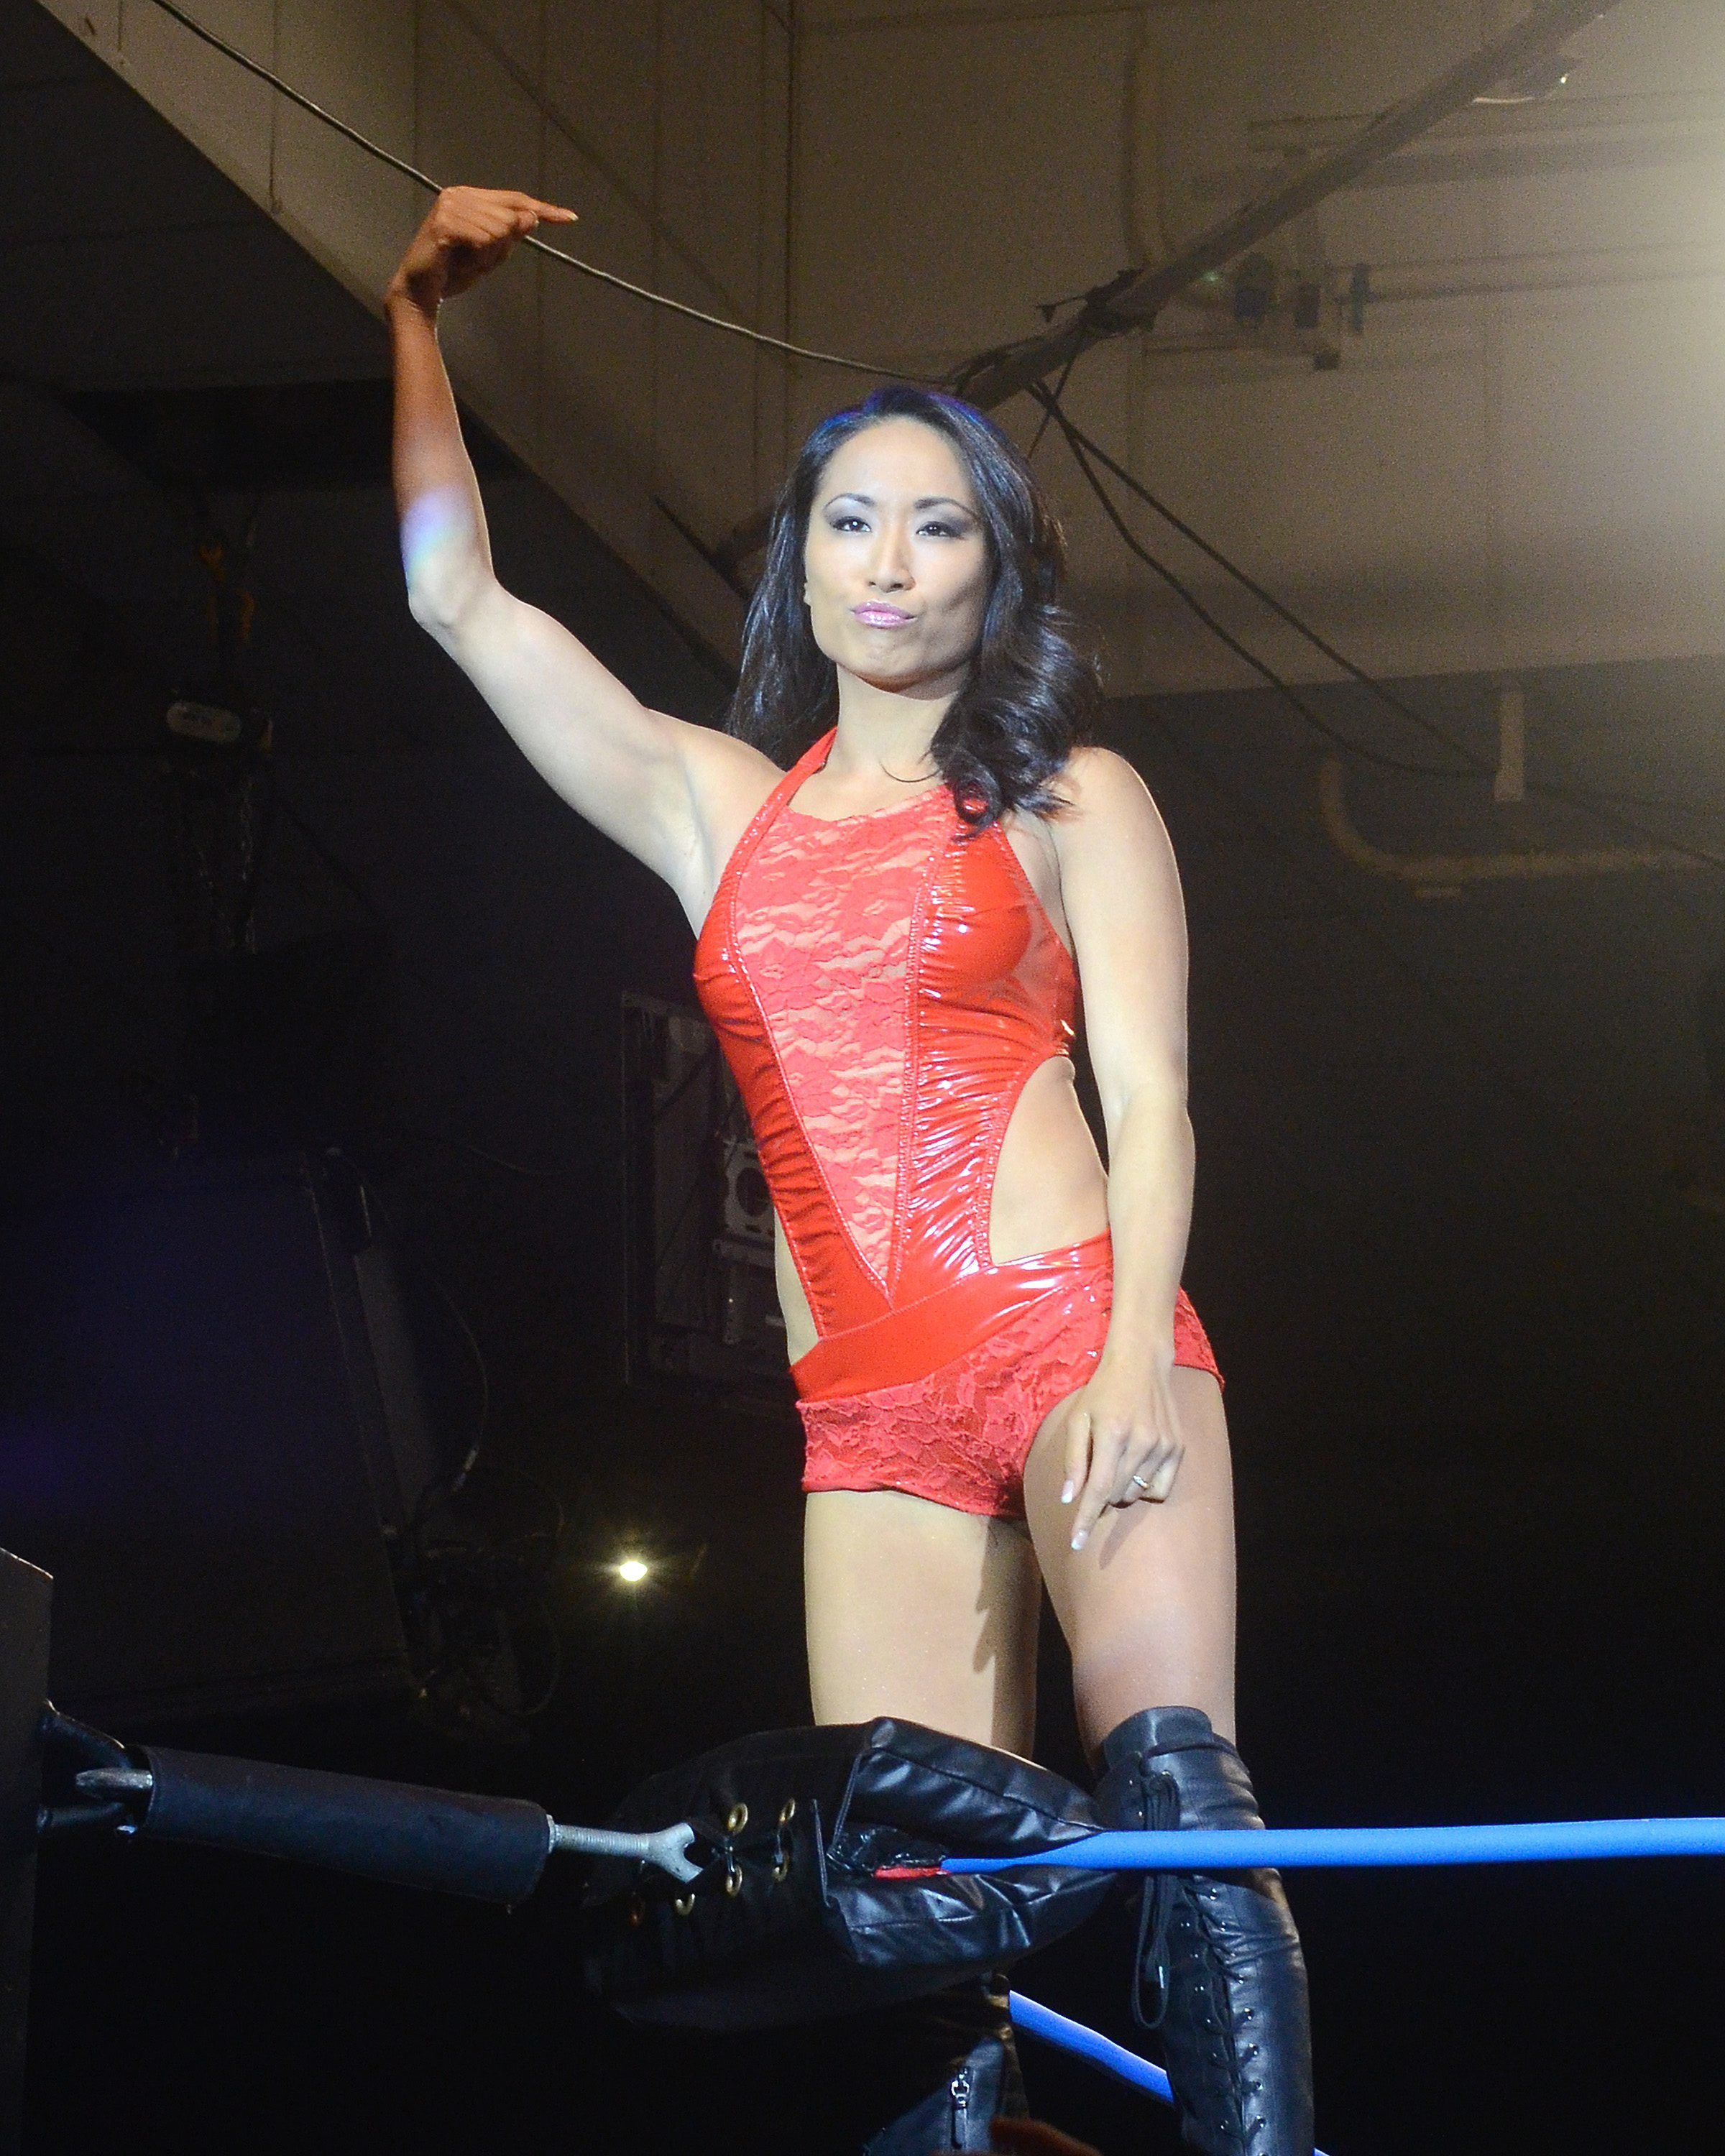 Gail Kim Porn Video gail kim accuses the mcmahon family of racism - wrestling